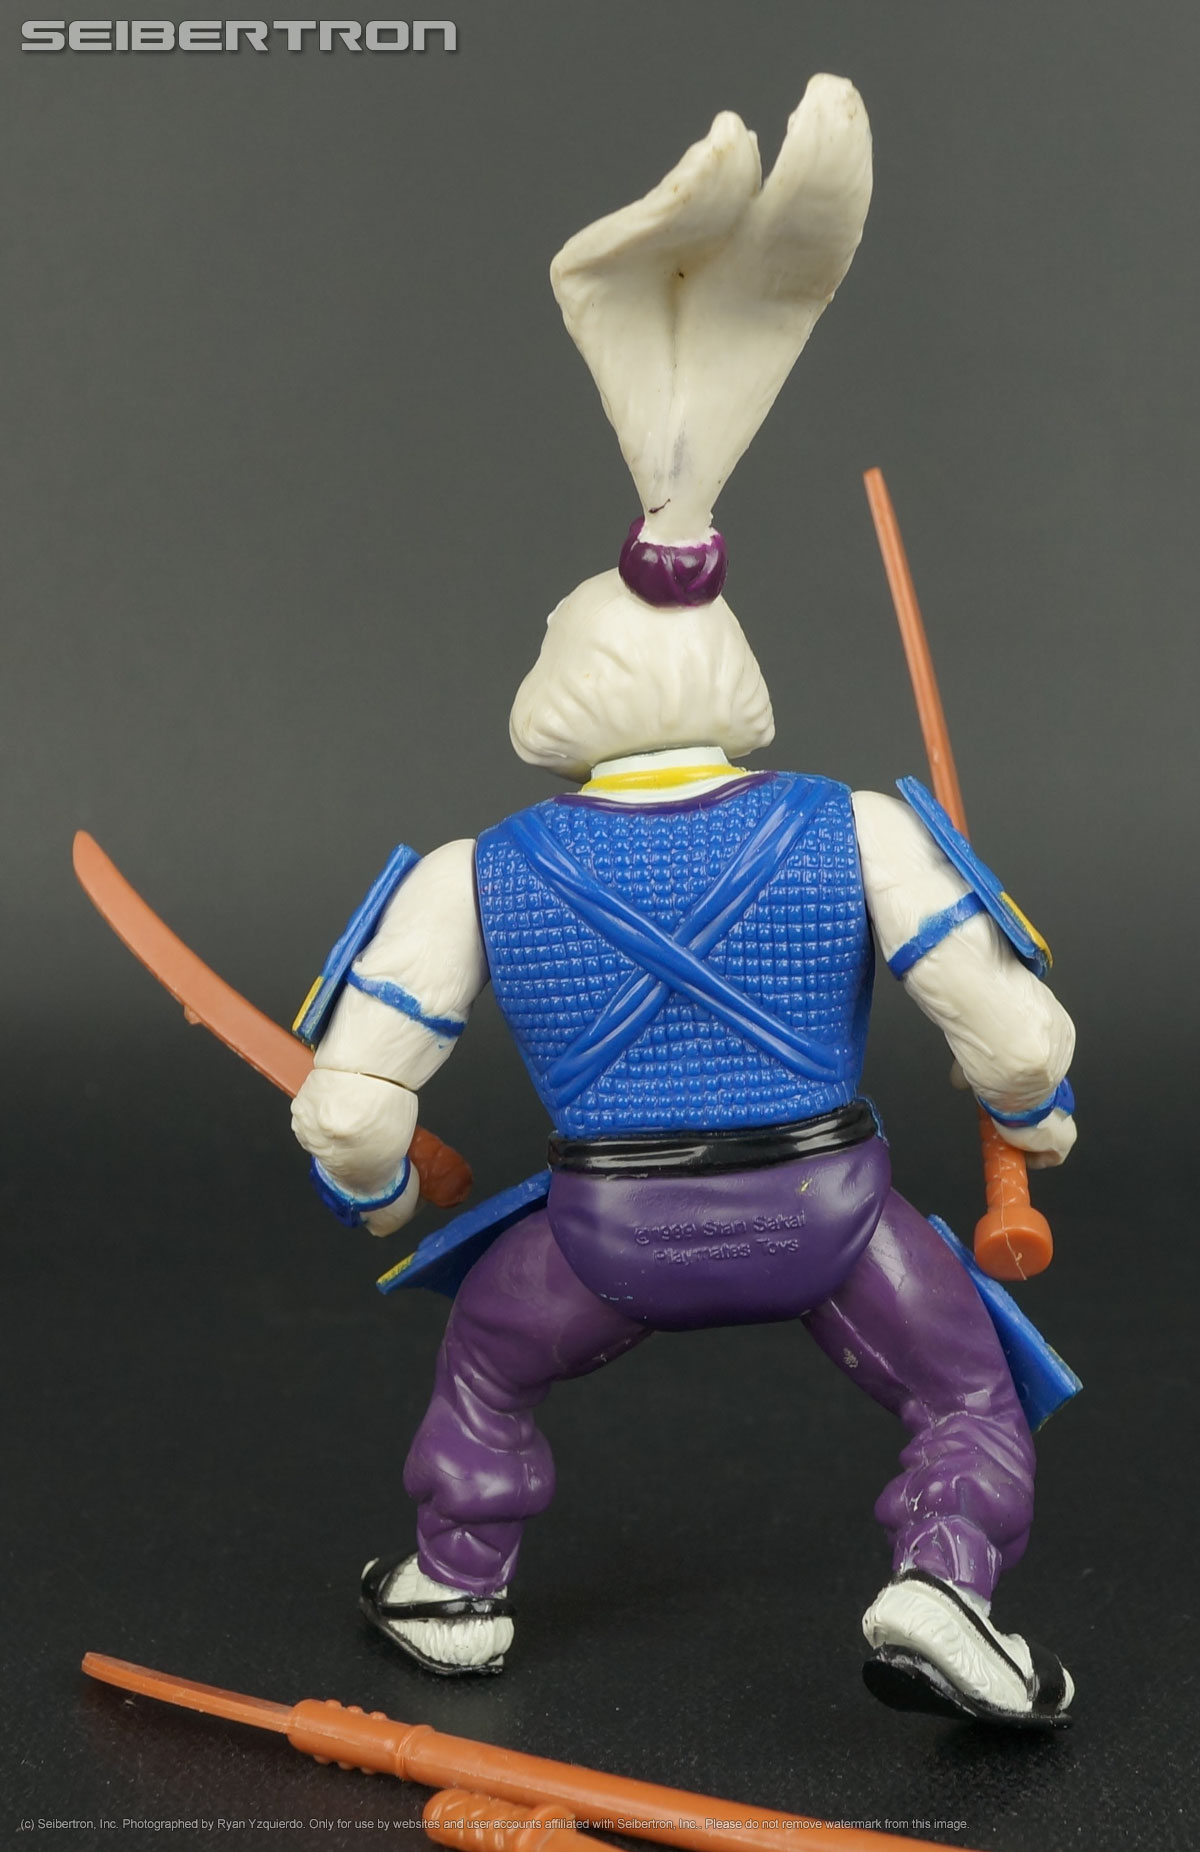 Teenage Mutant Ninja Turtles and Transformers listings from Seibertron.com: USAGI YOJIMBO Teenage Mutant Ninja Turtles 100% complete 1989 vintage TMNT